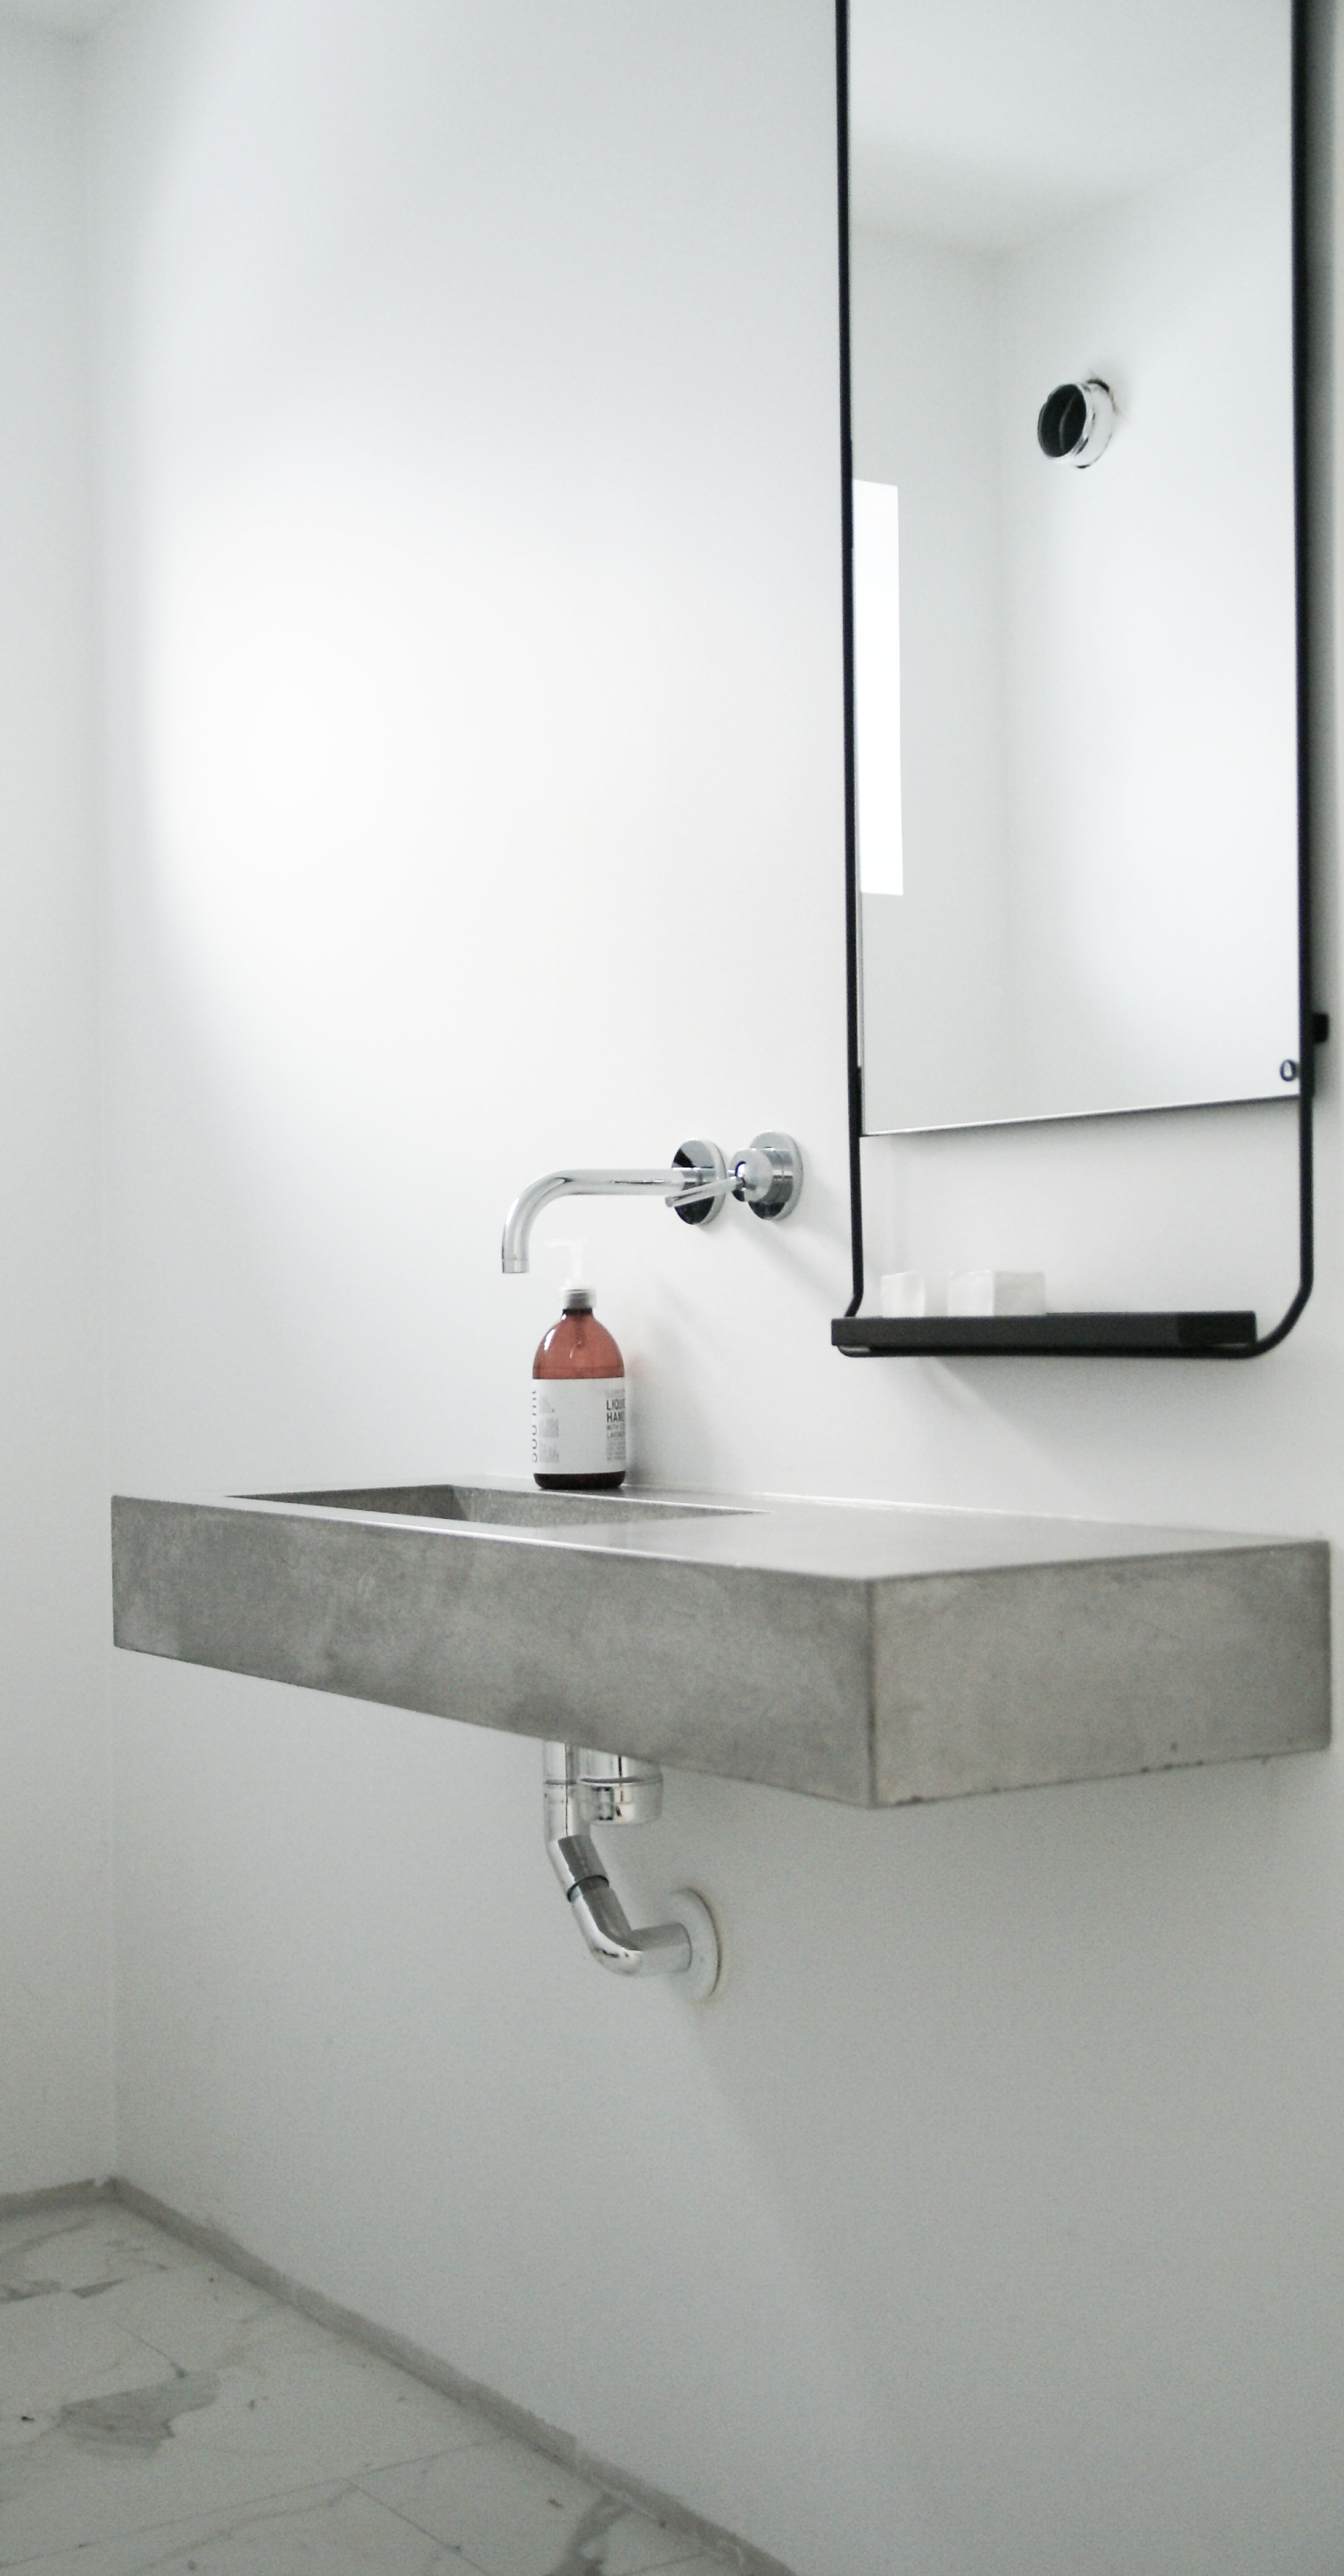 products sinks wall in p mounted bathroom mount sink barclay compact white